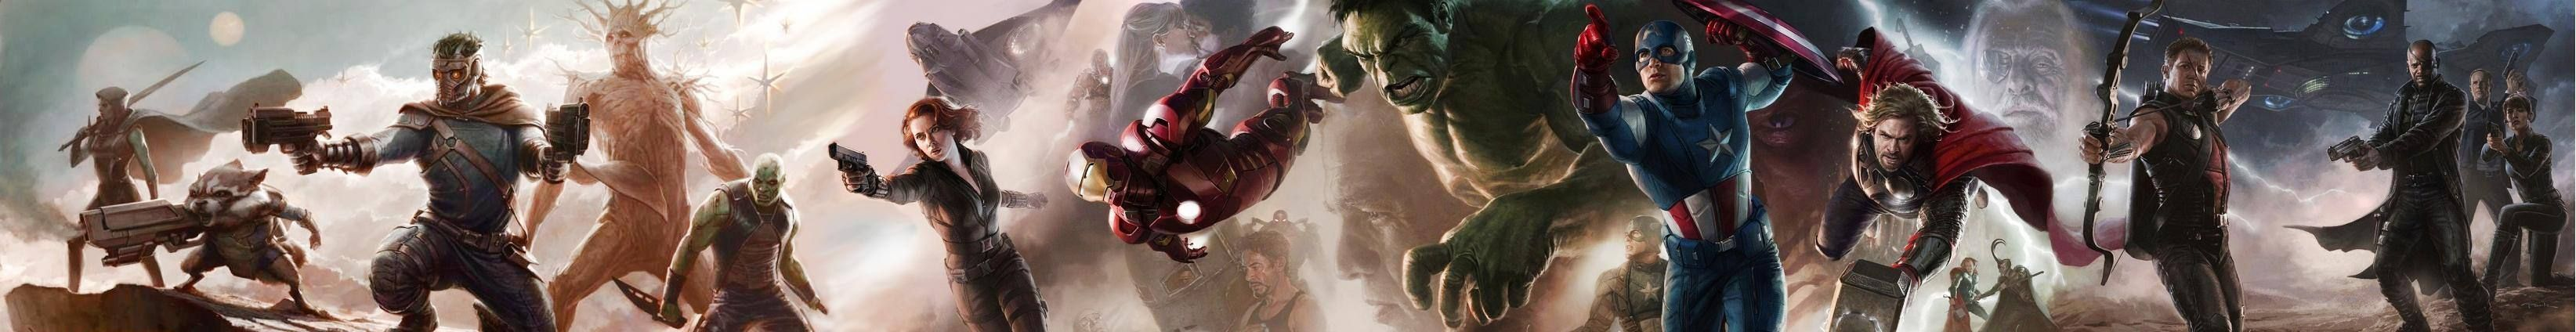 Guardians of the Galaxy and The Avenger cast combined